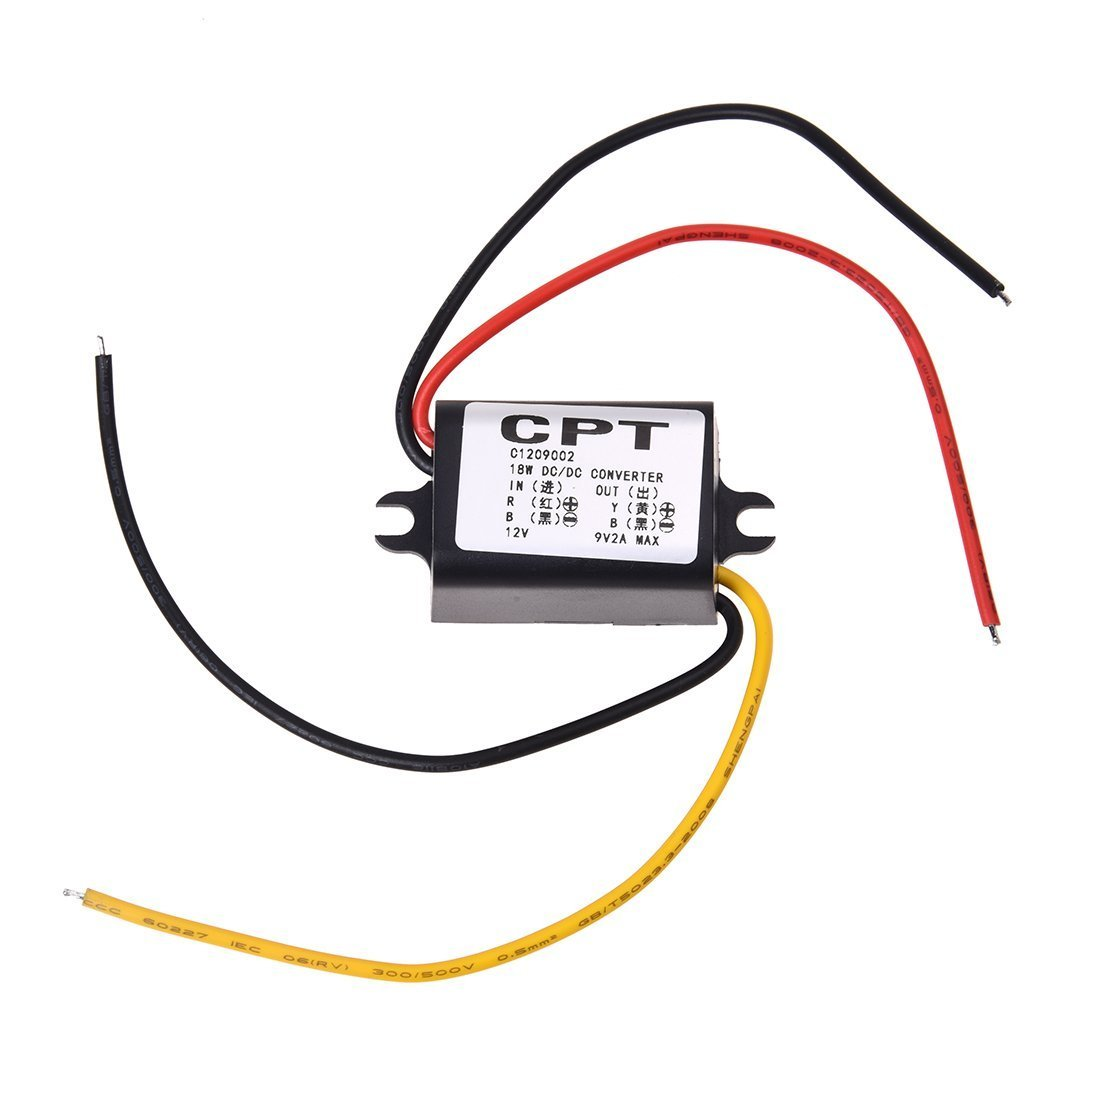 camping sites etc A1 ELECTRICS A1ELECTRICS.COM 16A mains extension hook up lead 2.5mm flex for caravans choice of length 10 meter motor homes